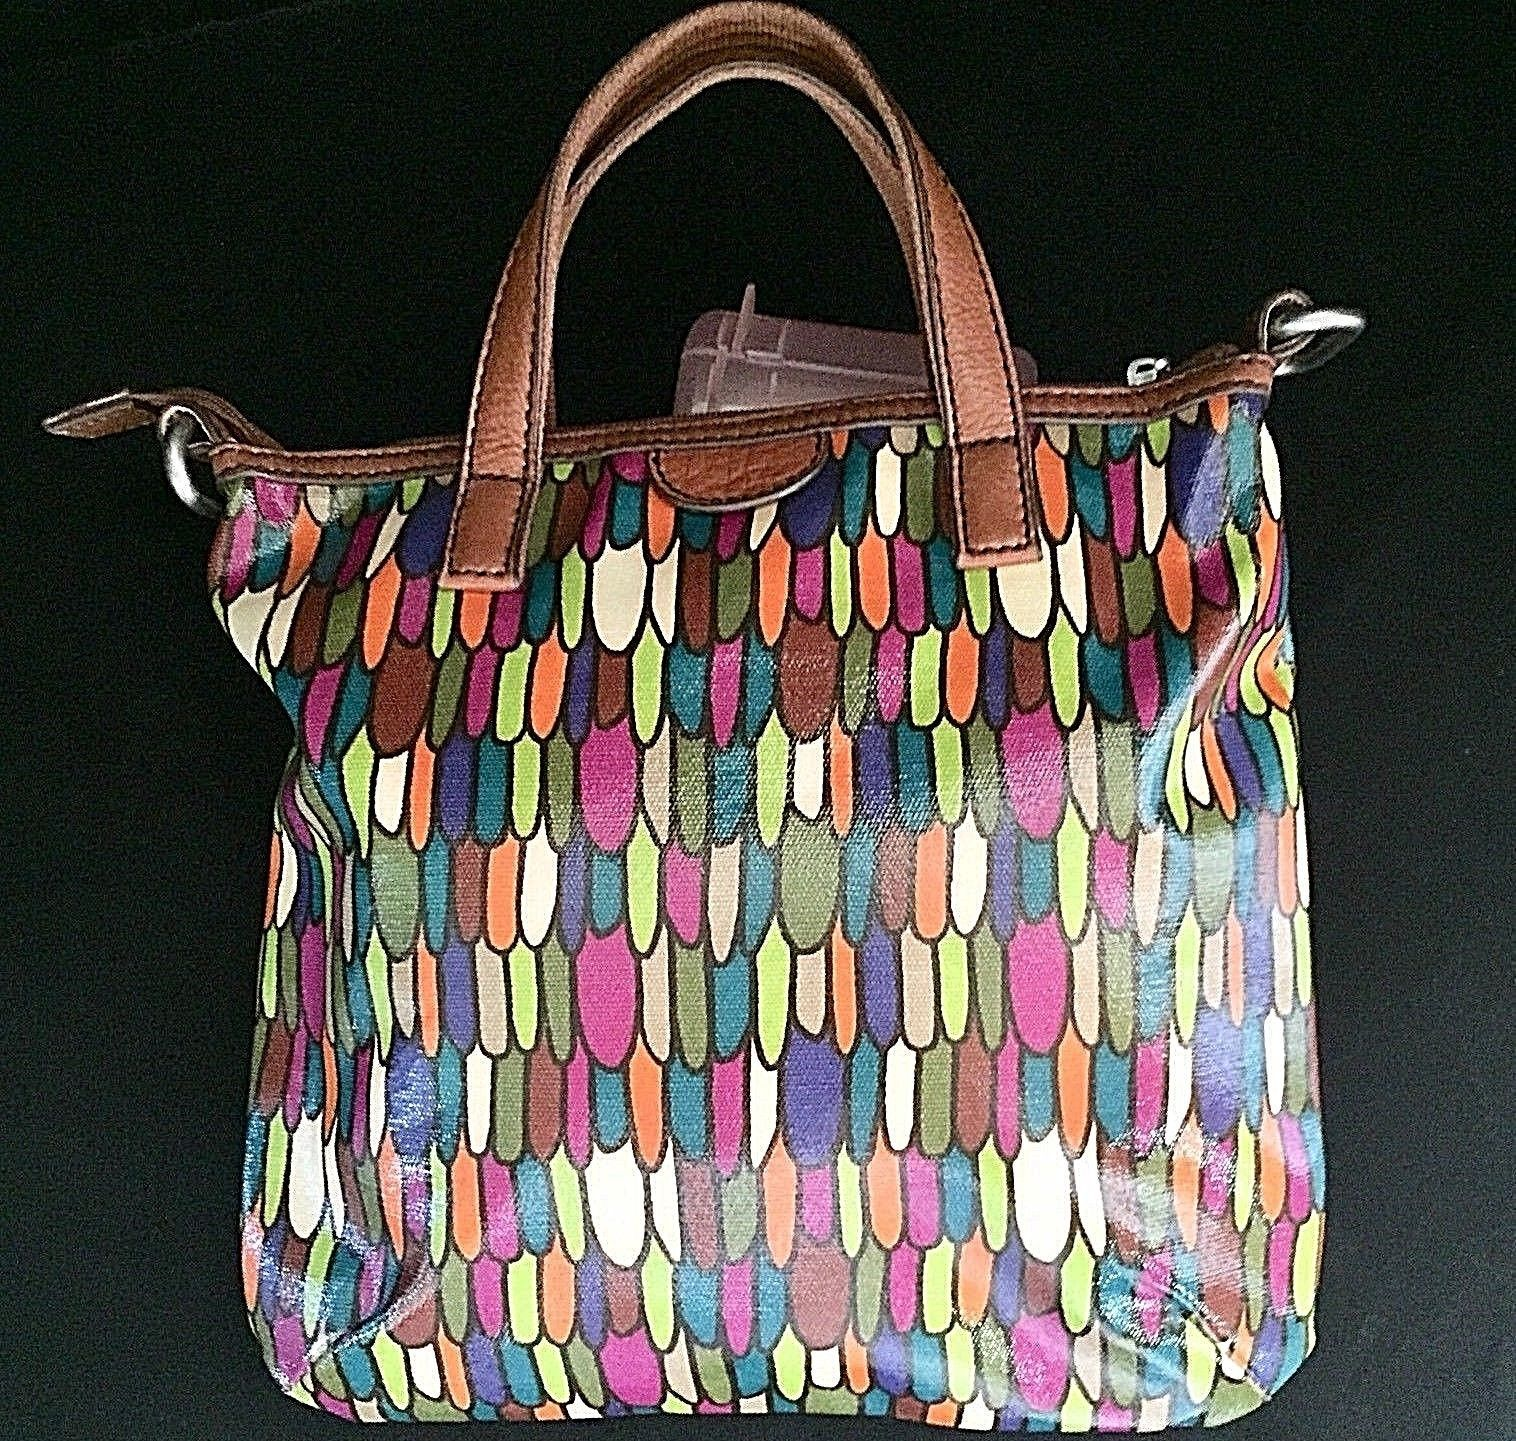 Fossil Calypso Key Per ZB5125 Multi Color Feather Print Coated Canvas Tote Bag image 2